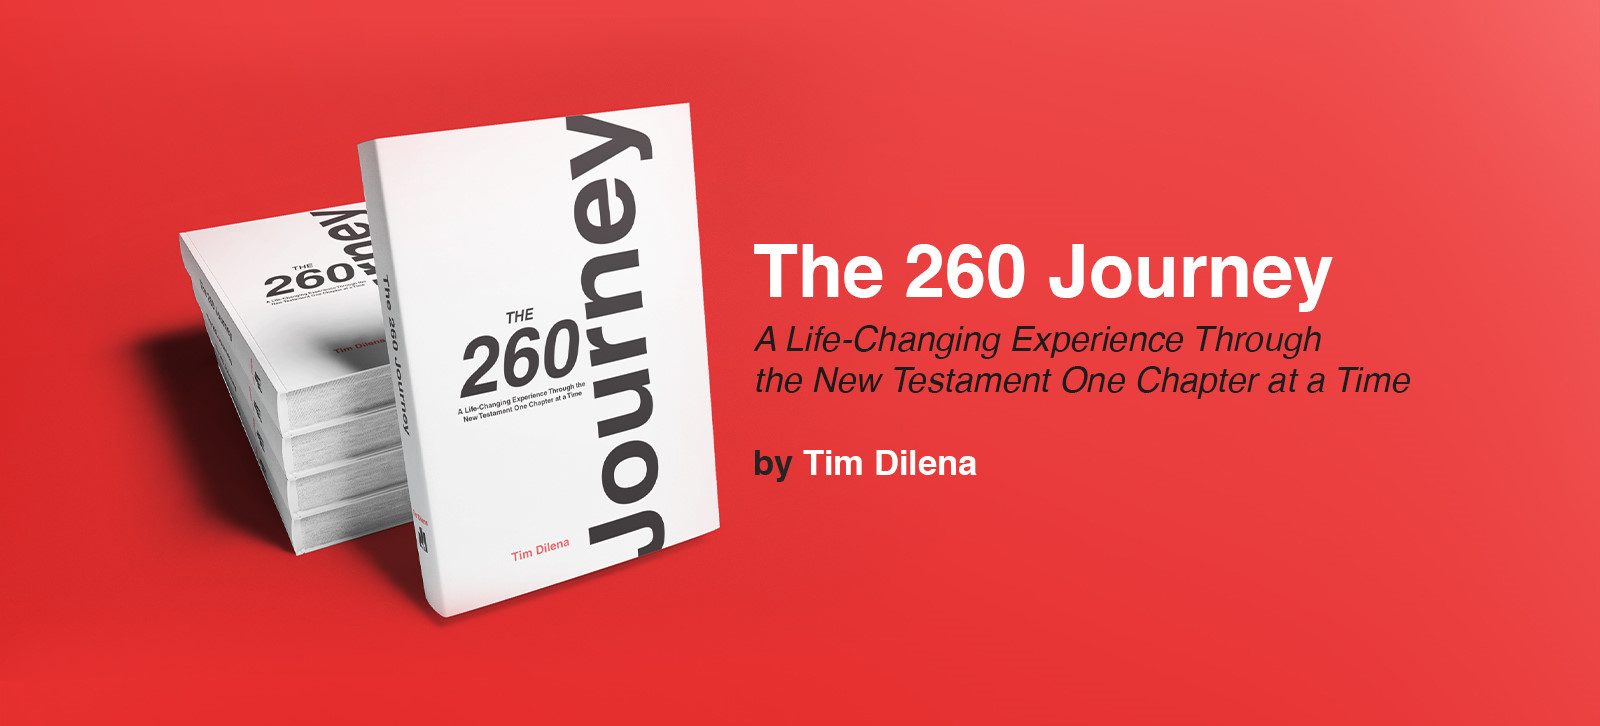 The 260 Journey